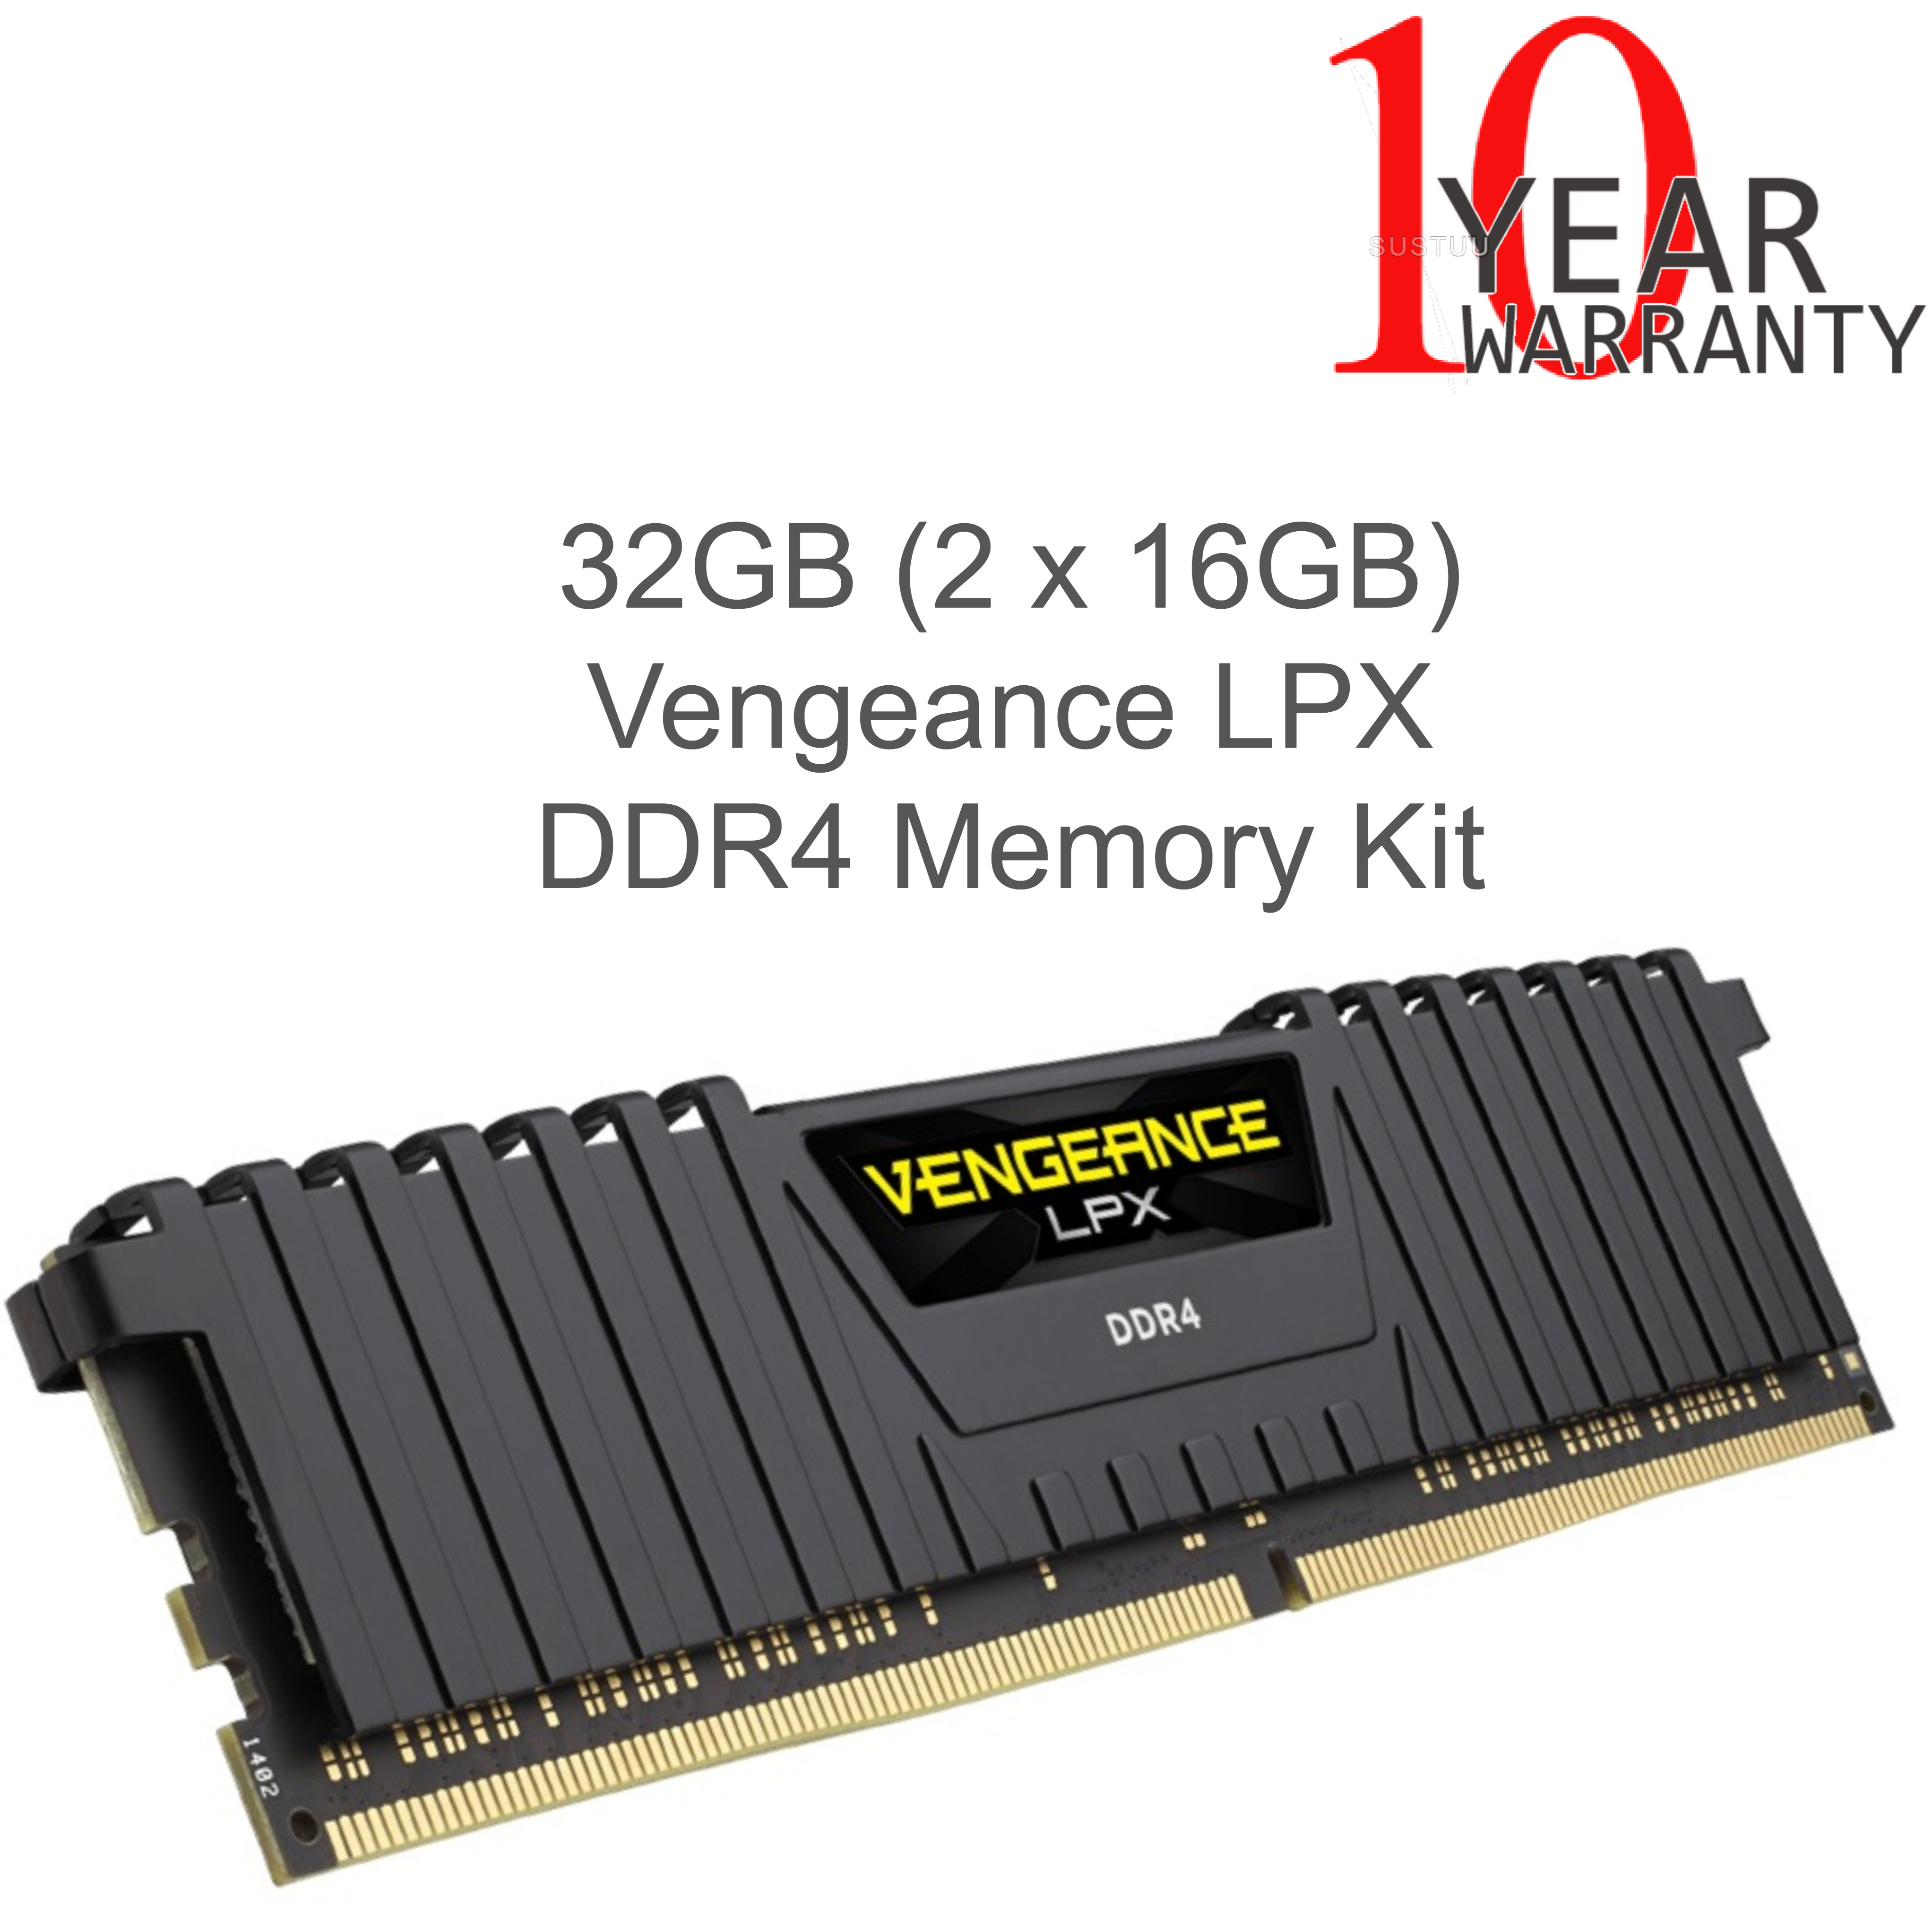 Corsair 32GB (2 x 16GB) Vengeance LPX DDR4 XMP 2.0 Desktop Memory Kit | Black | NEW